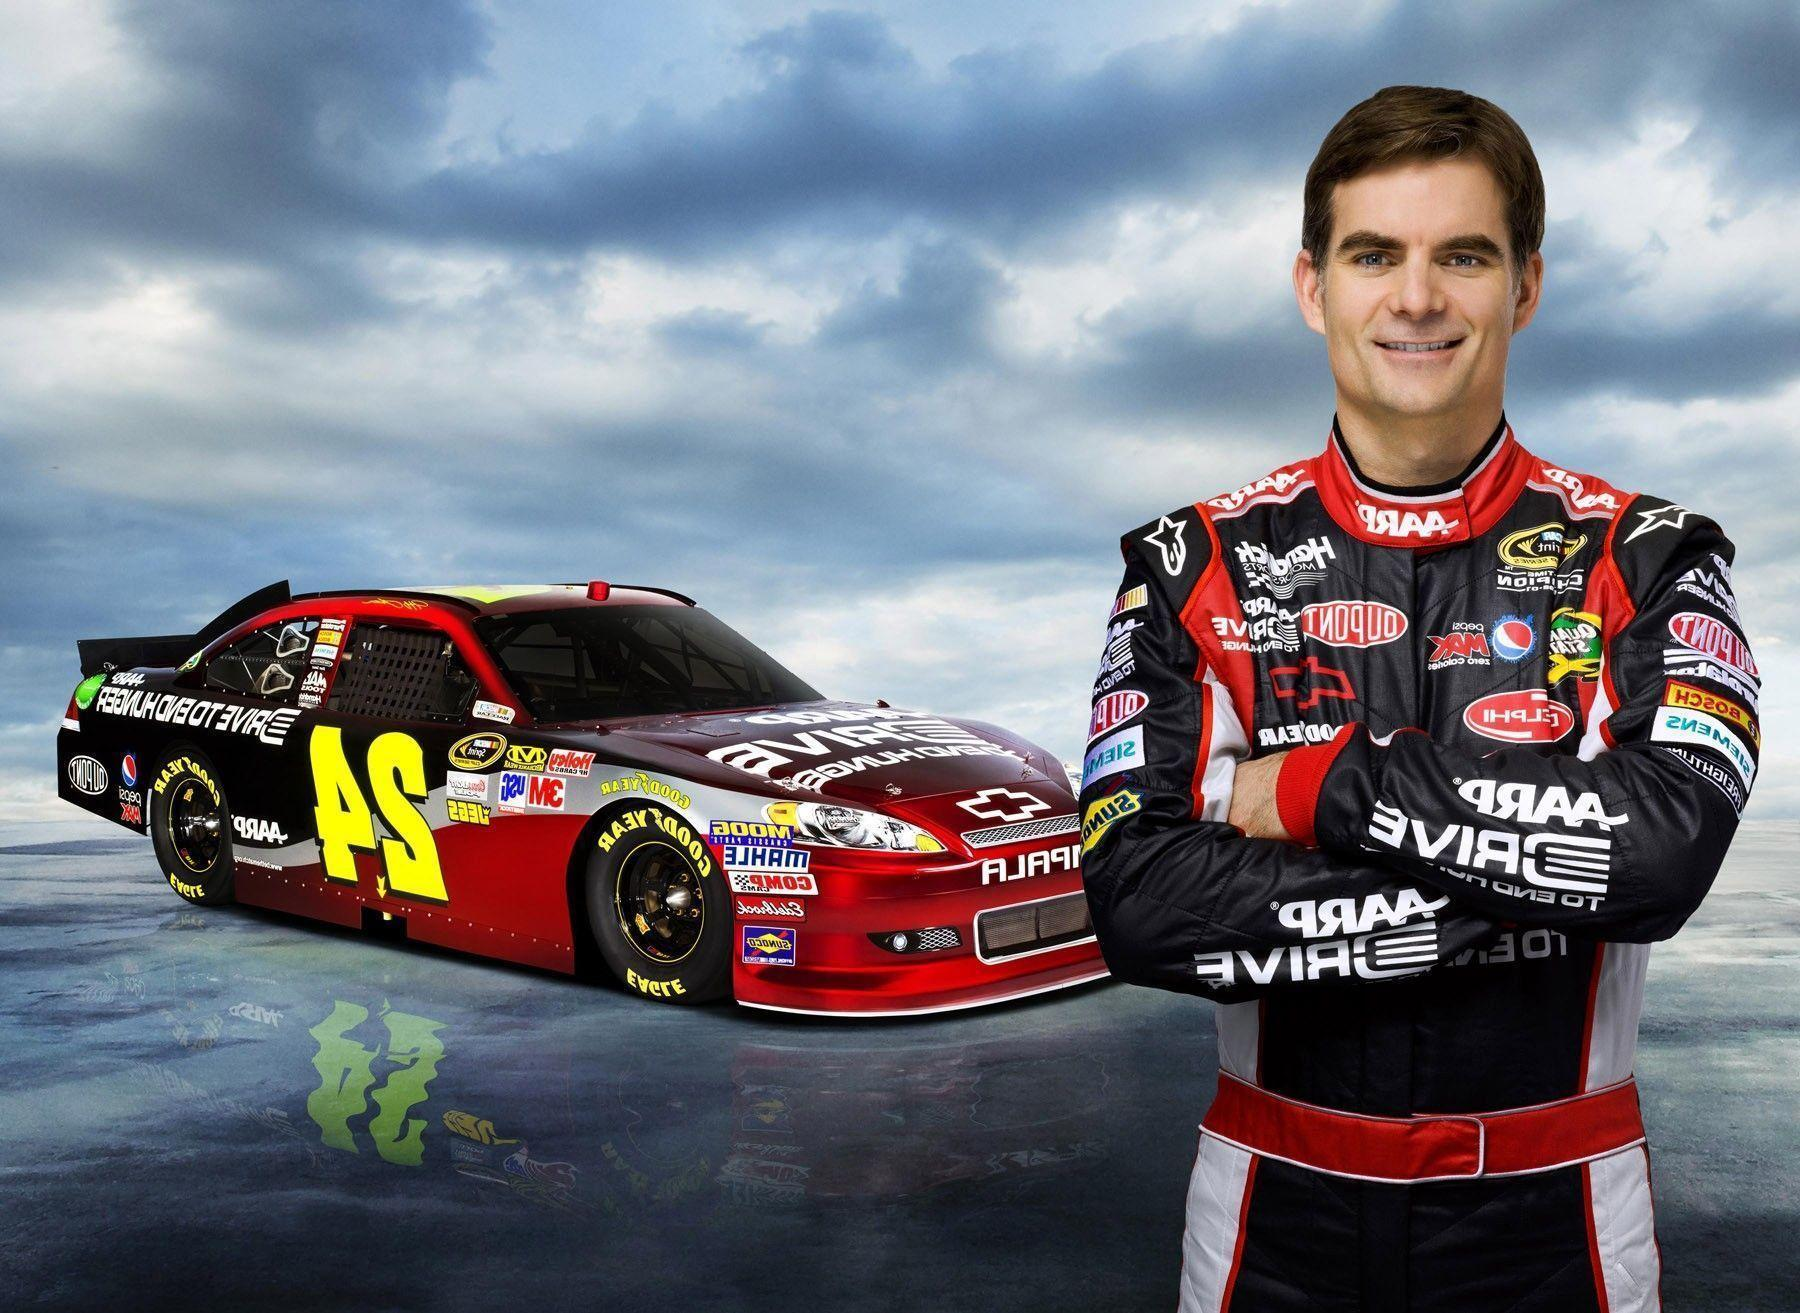 Awesome Race Car Wallpapers Free Jeff Gordon Wallpapers Wallpaper Cave